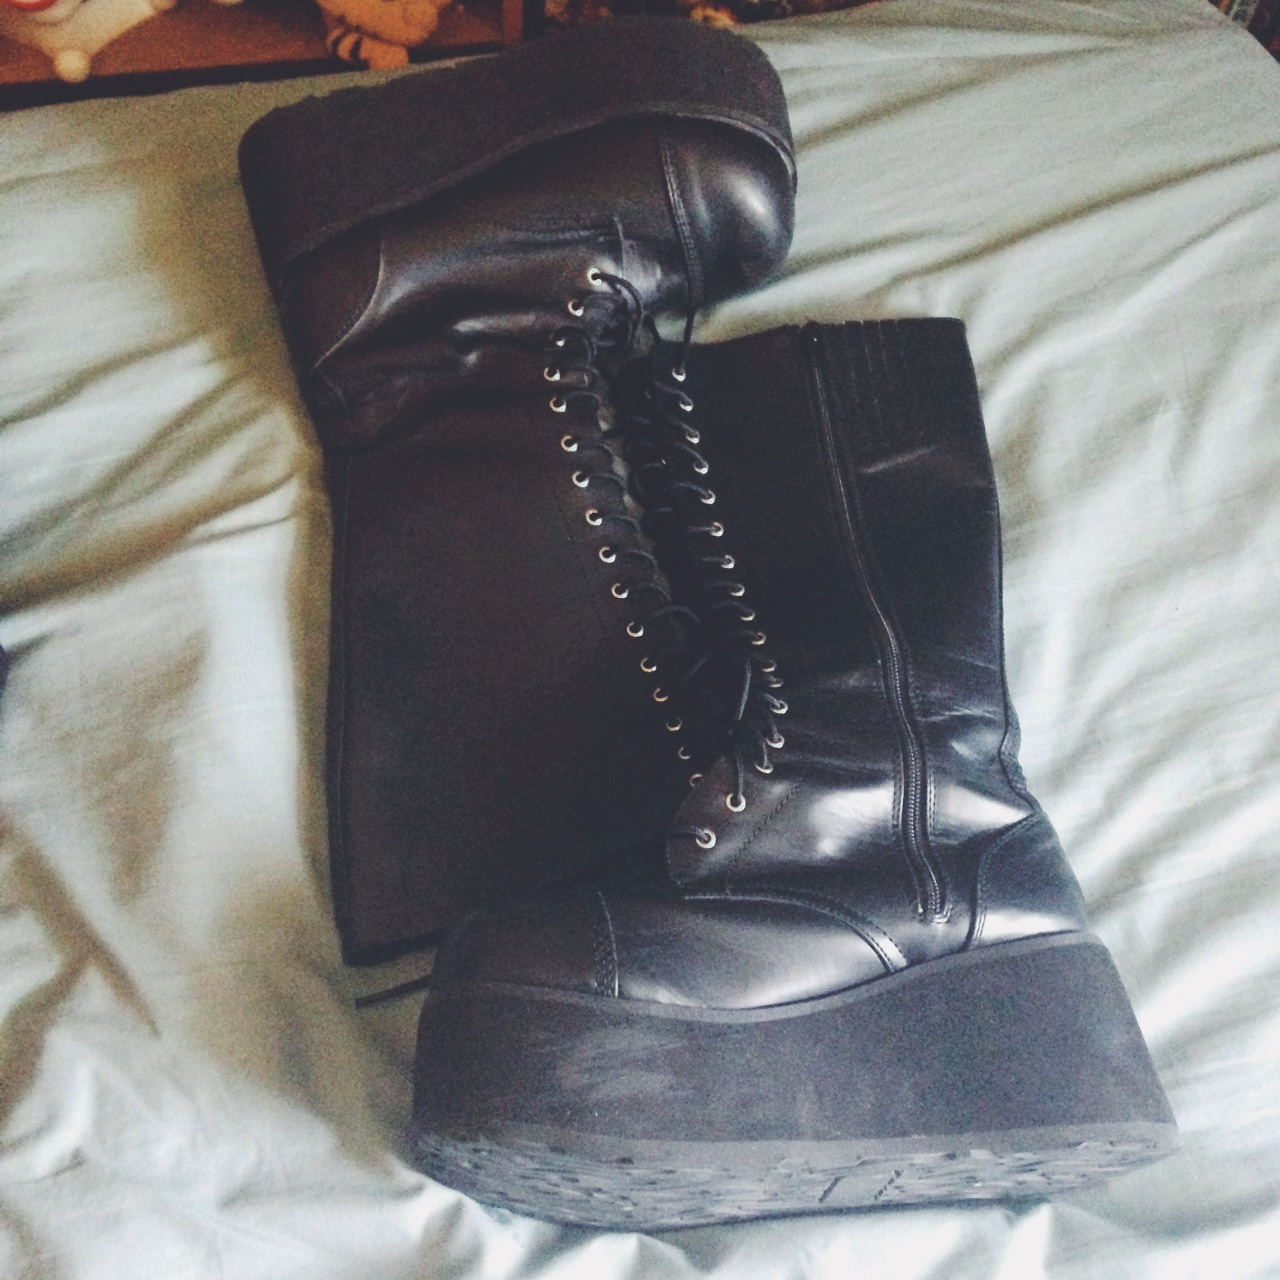 Knock Off Demonia Boots Size 14 Women Lace Up With Depop